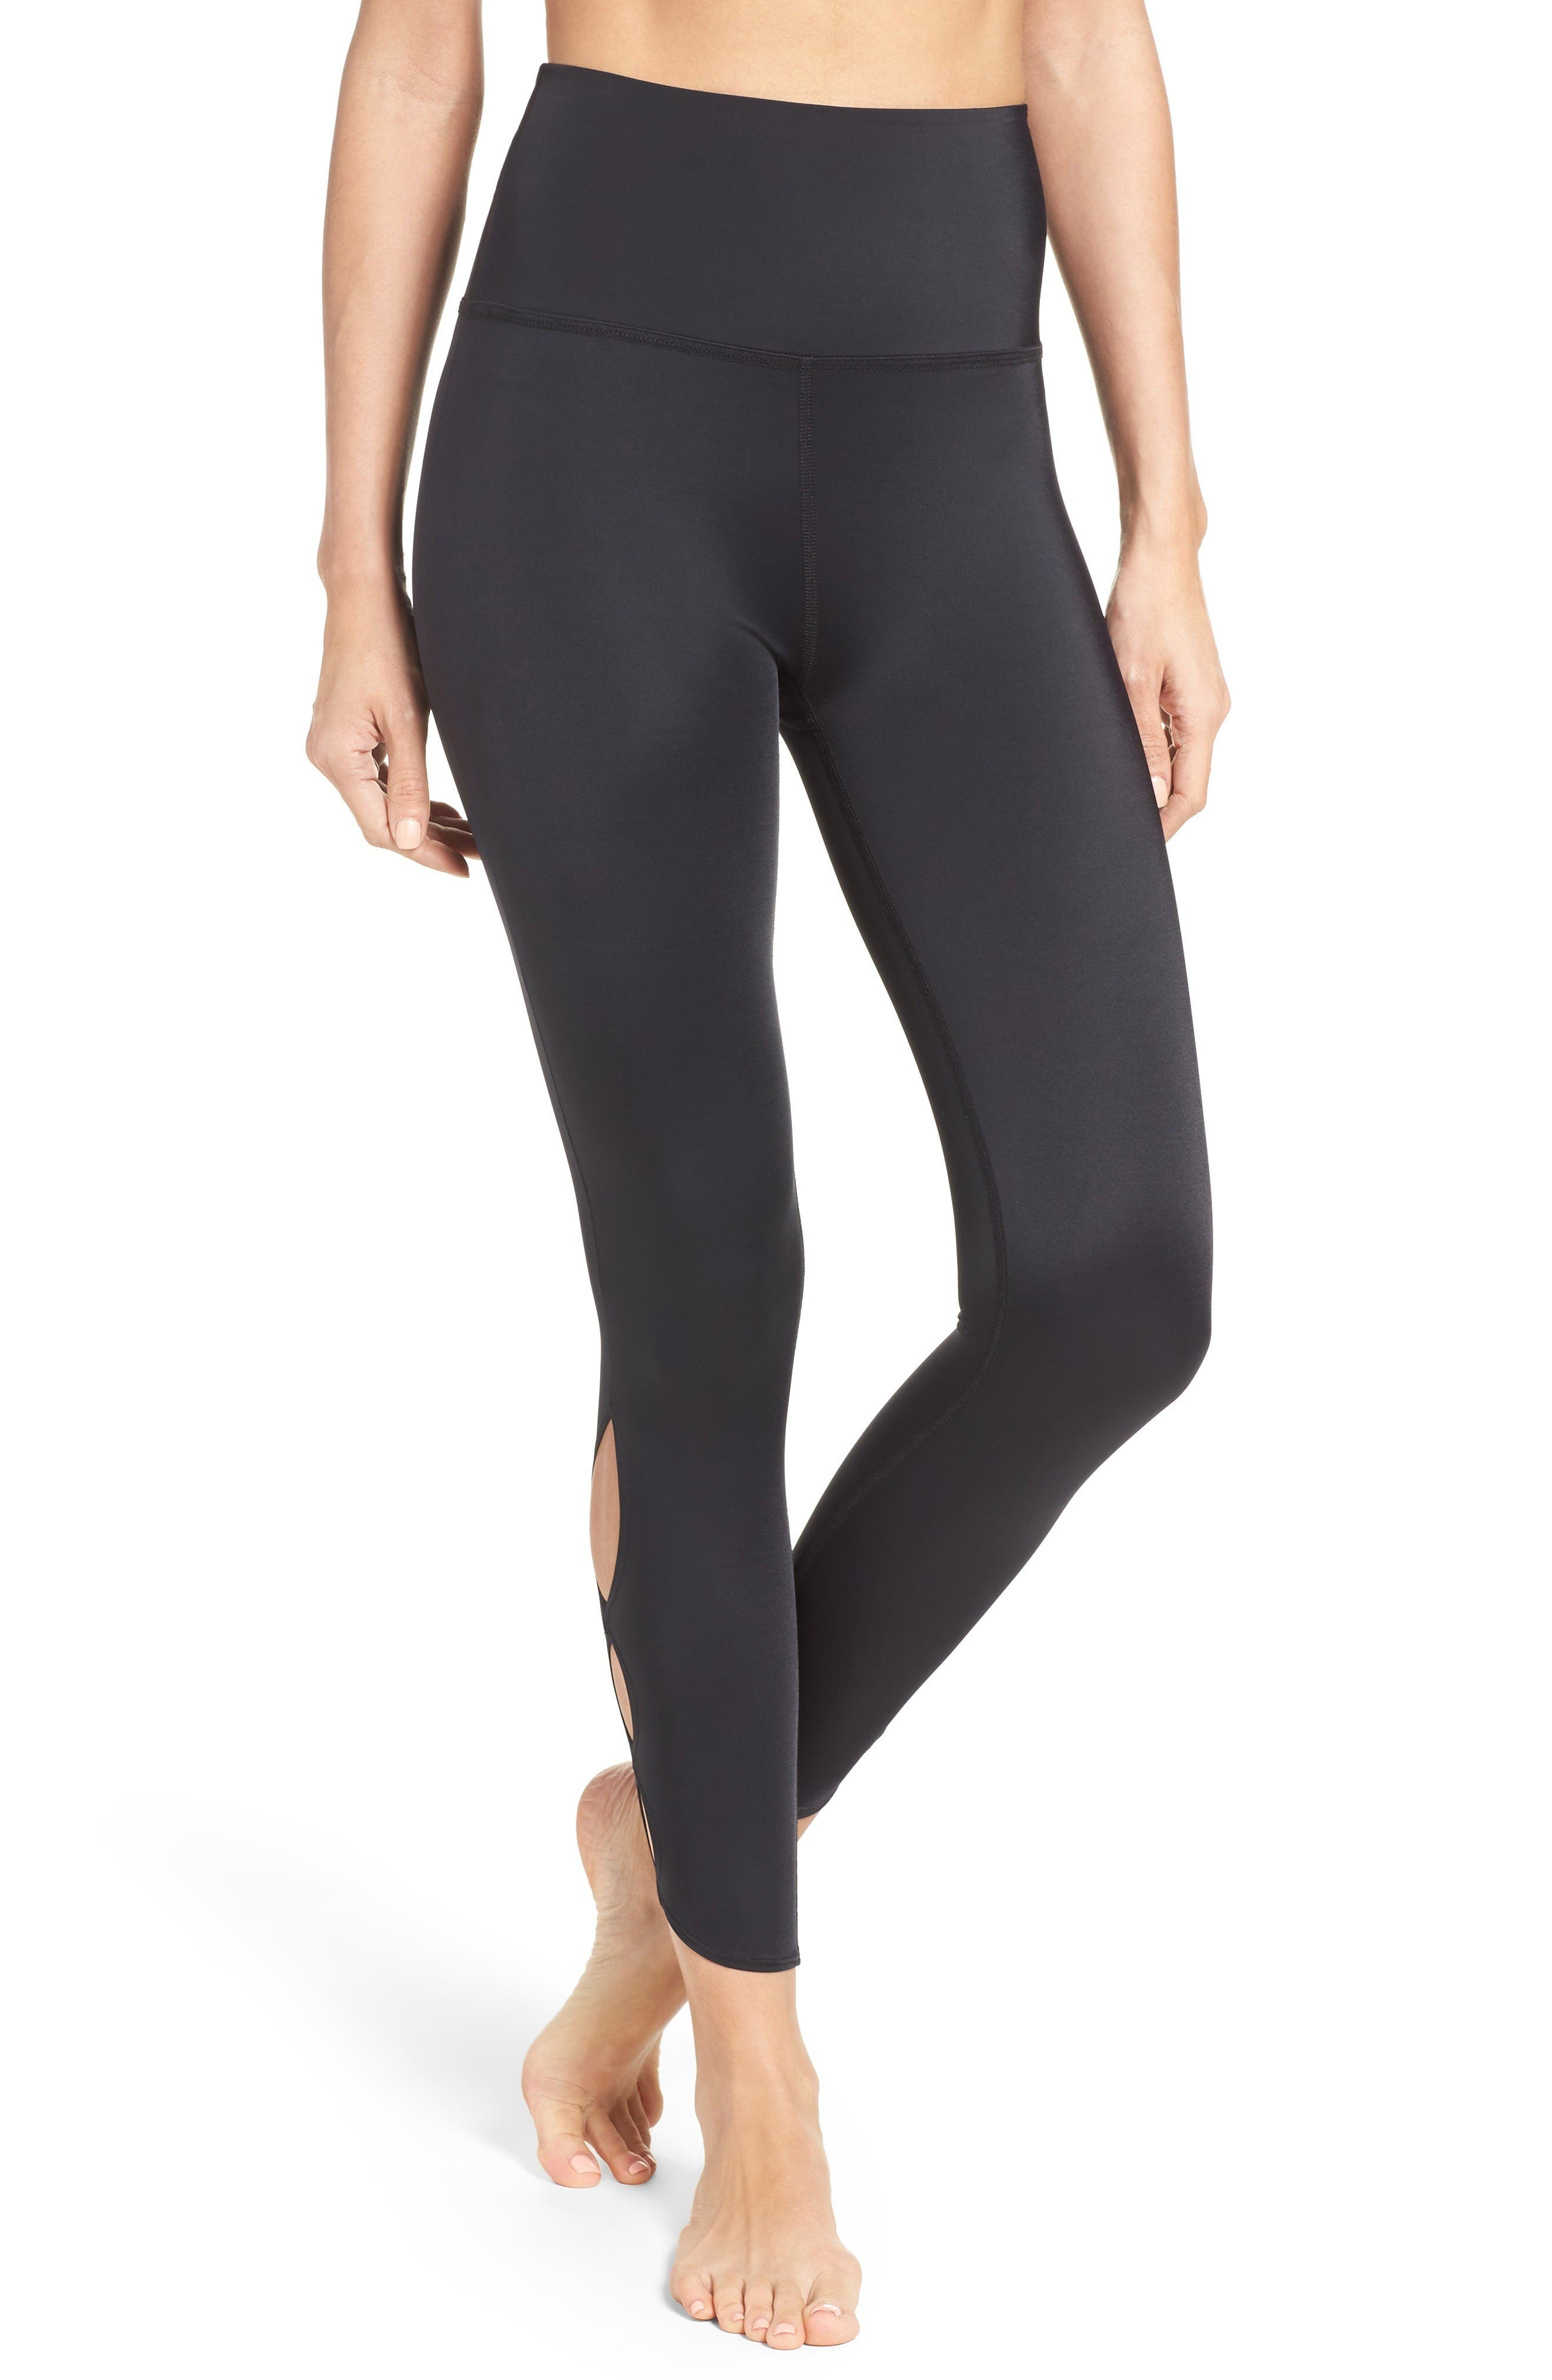 Alternate Image 1 Selected - Beyond Yoga Compression Lux High Waist Half Moon Crop Leggings